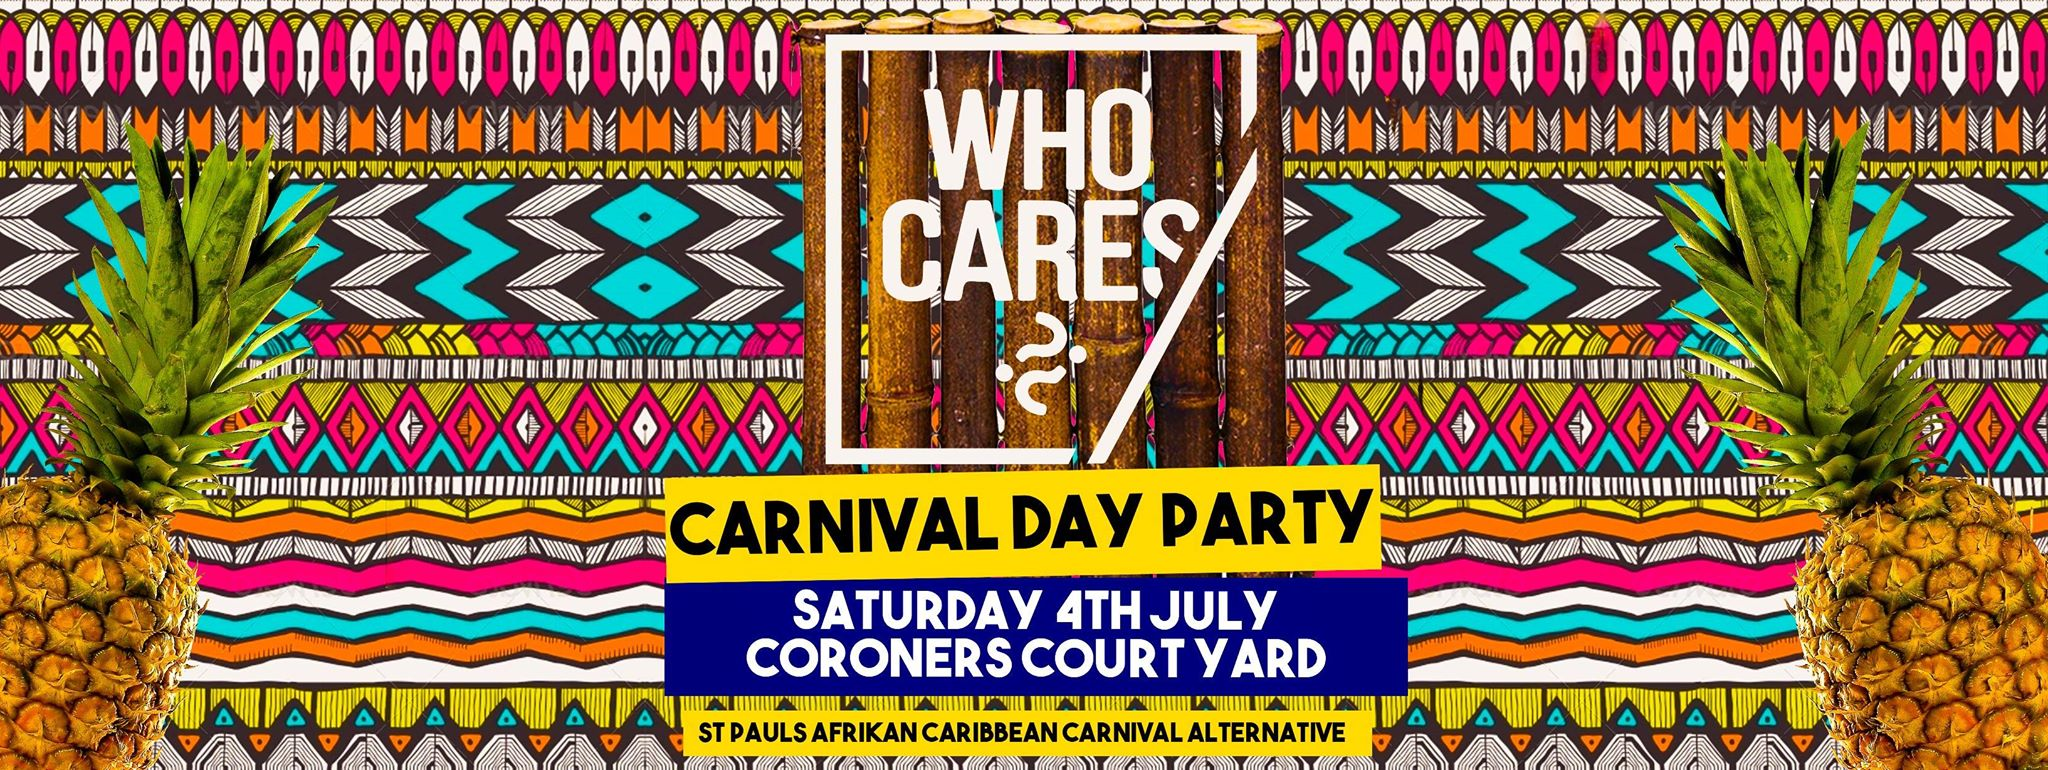 Who Cares Day Party - St Pauls Carnival Fundraiser